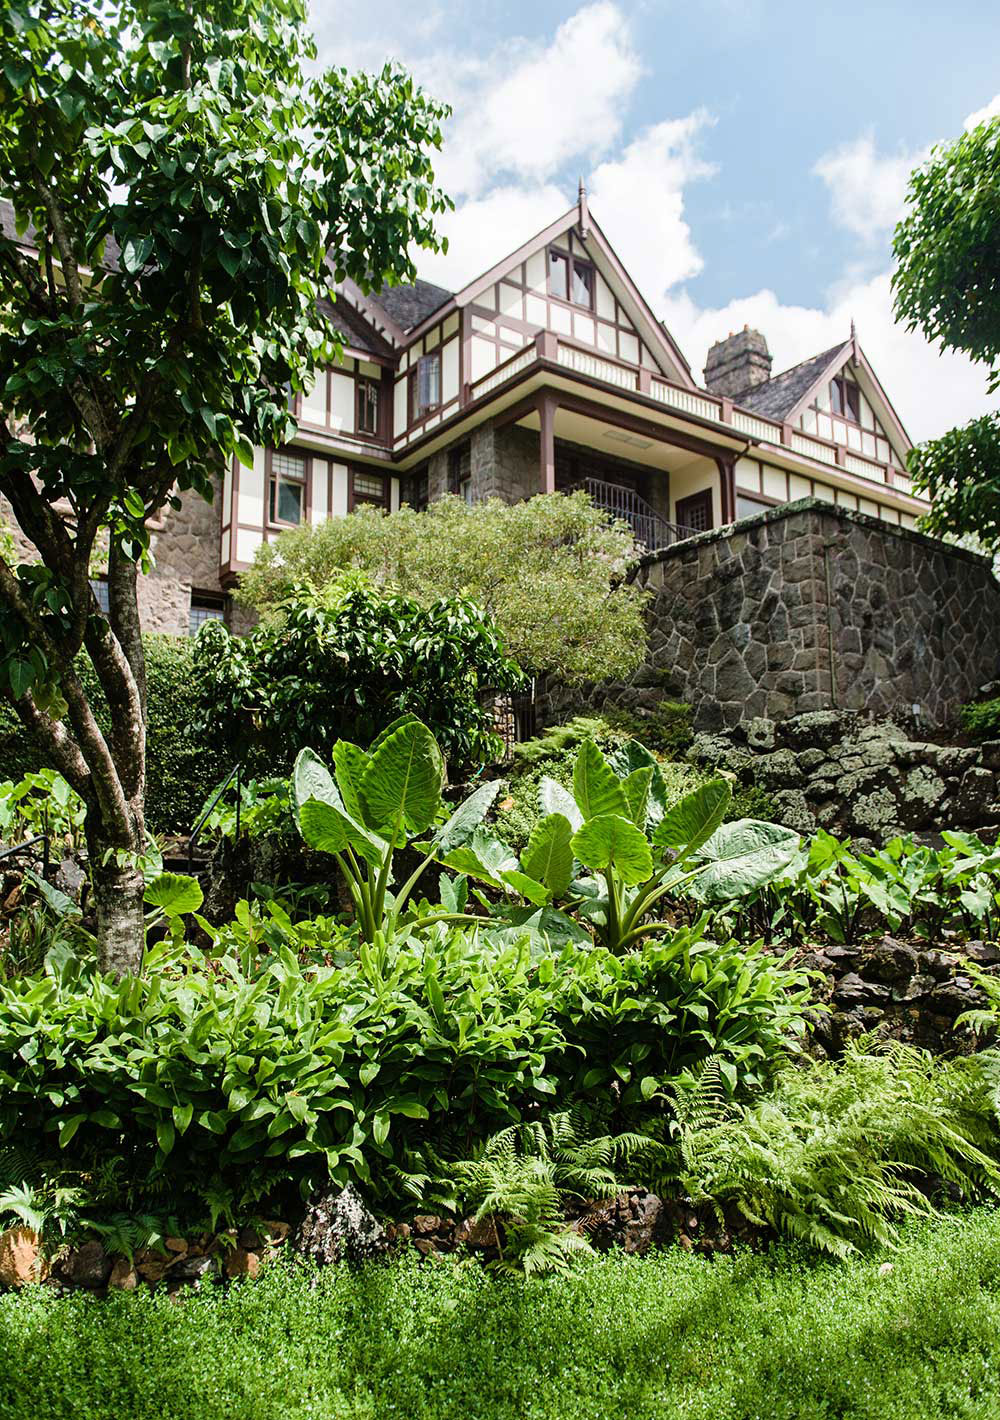 View of Manoa Heritage Center with stone wall and green plants